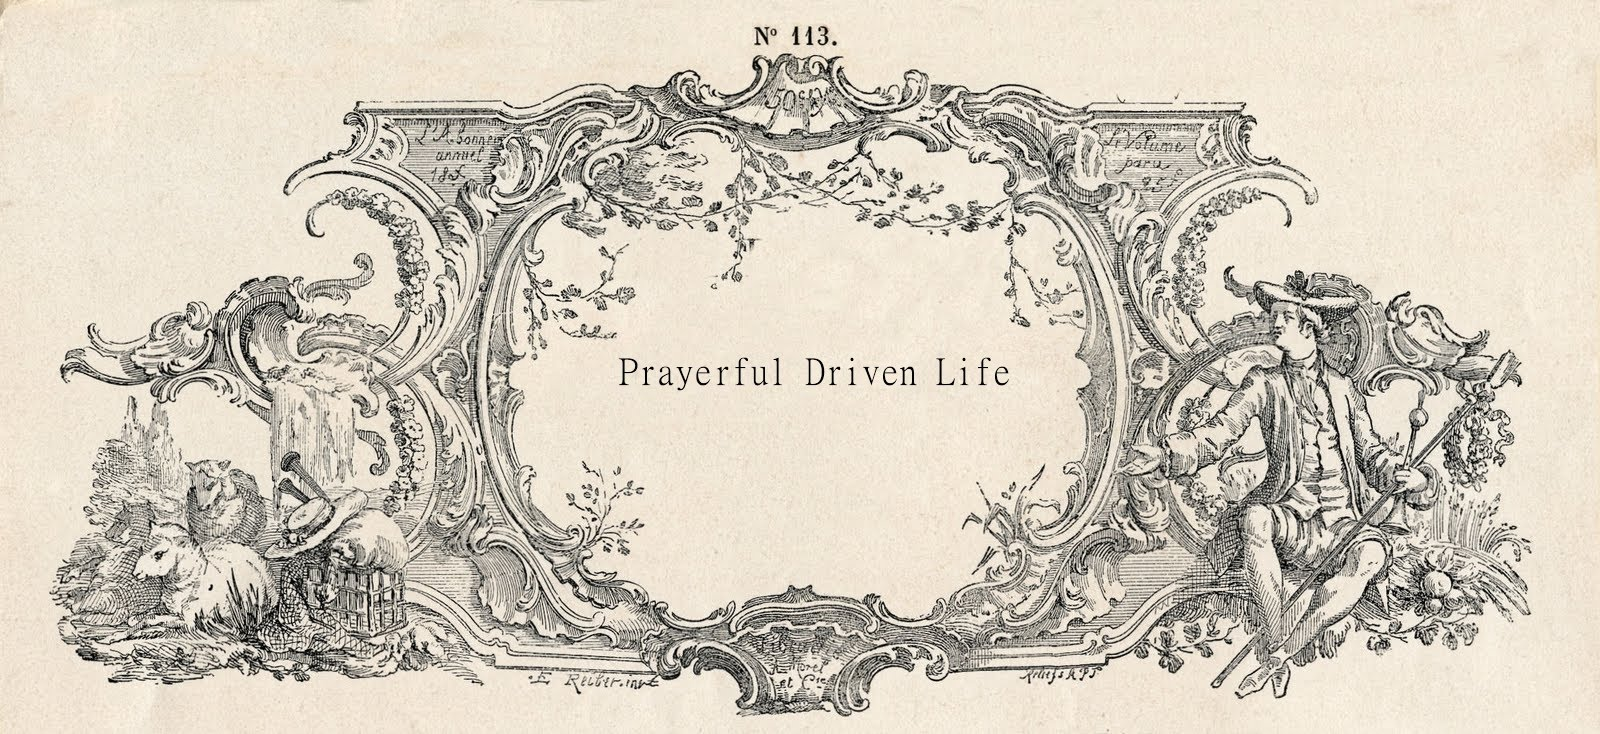 Prayerful Driven Life